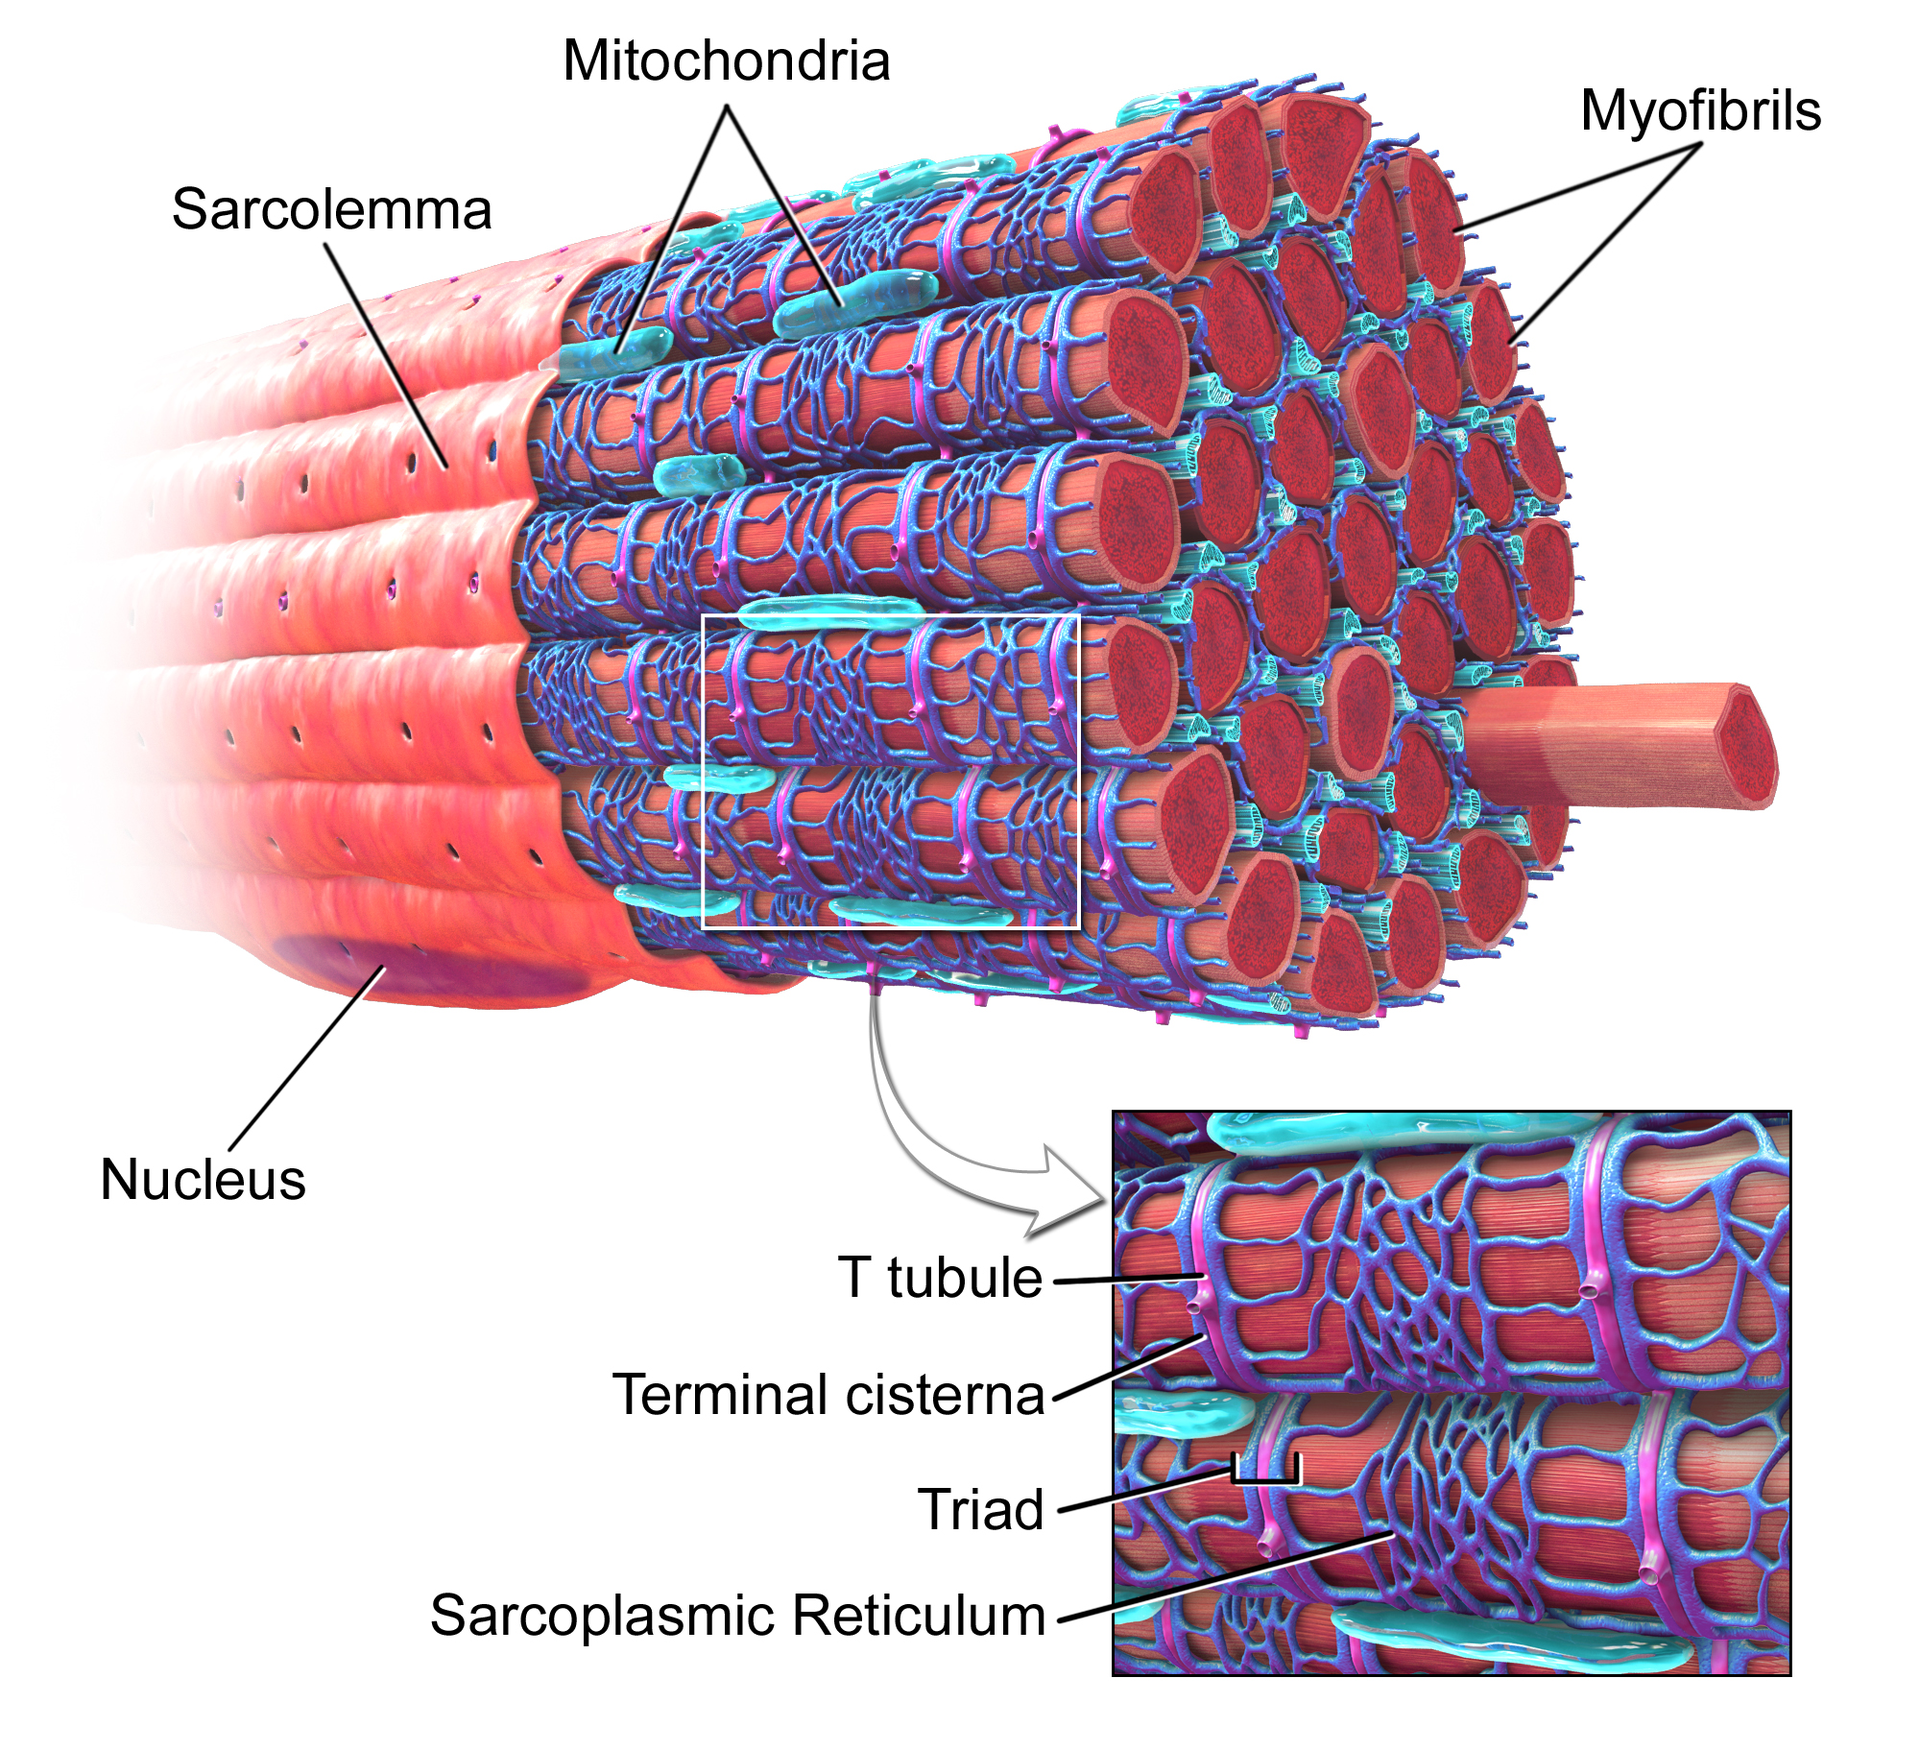 T-tubules (transverse tubules) are extensions of the cell membrane that penetrate into the center of skeletal and cardiac muscle cells